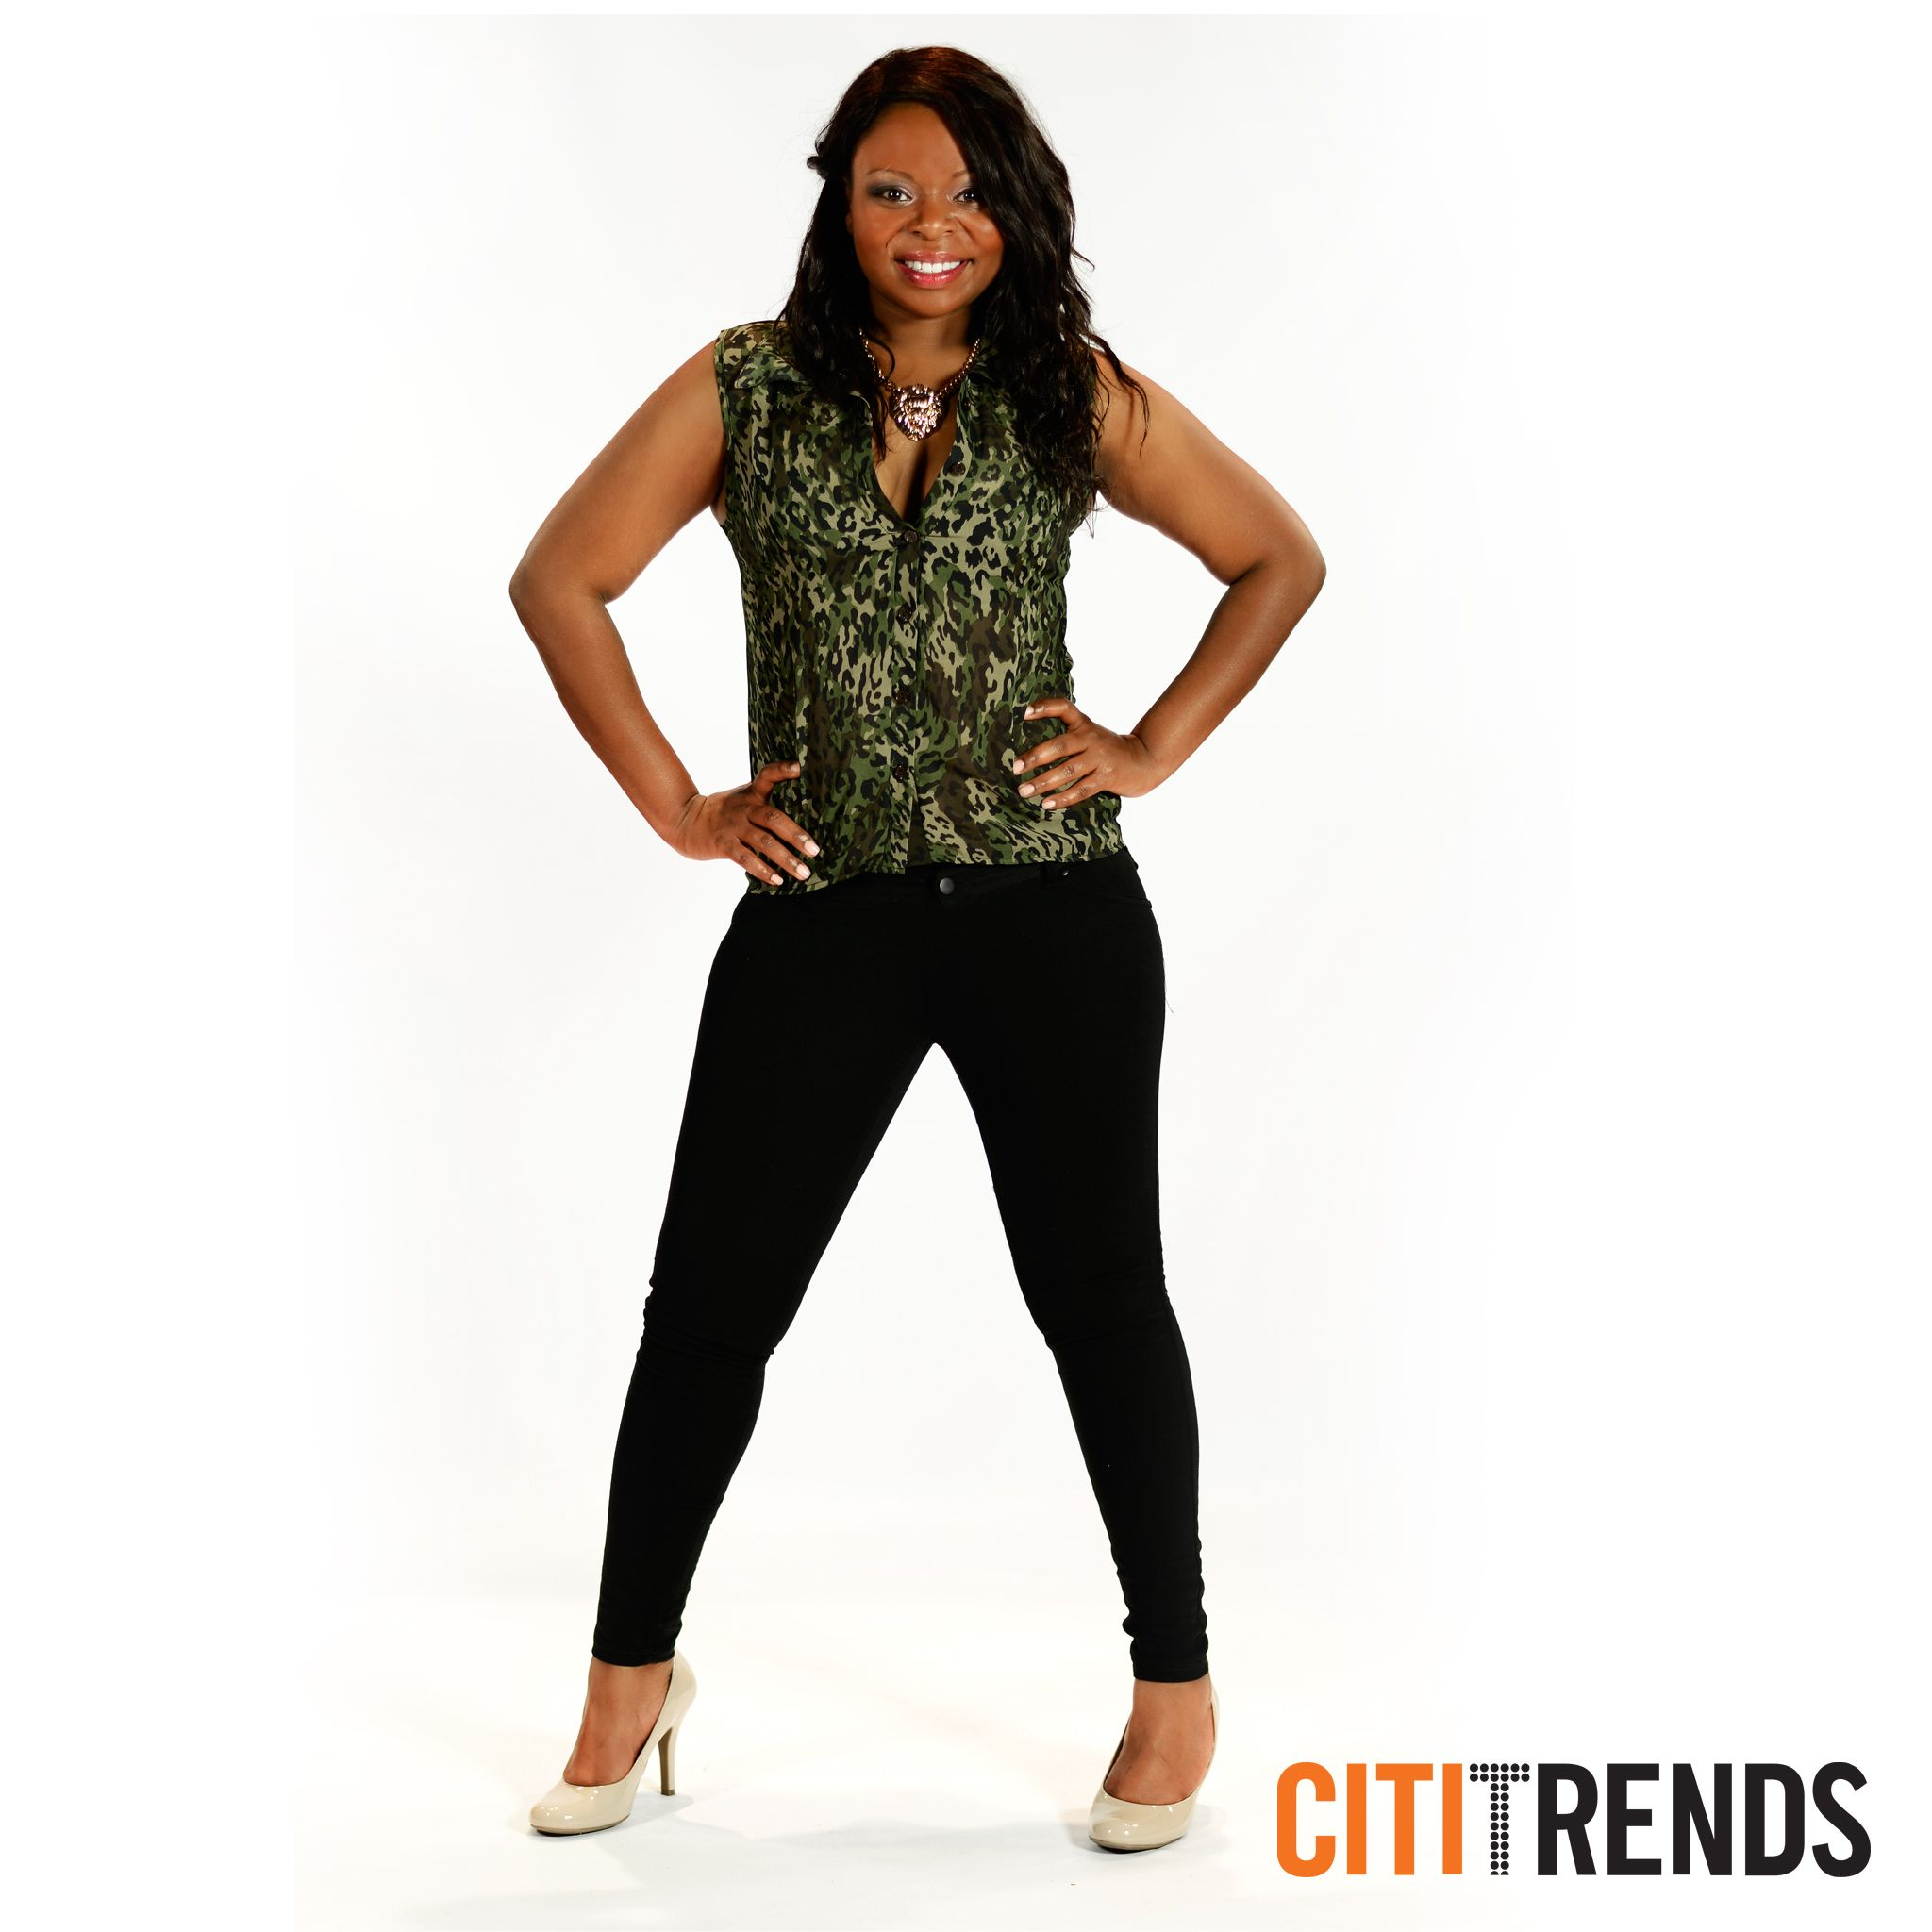 Citi trend clothing store